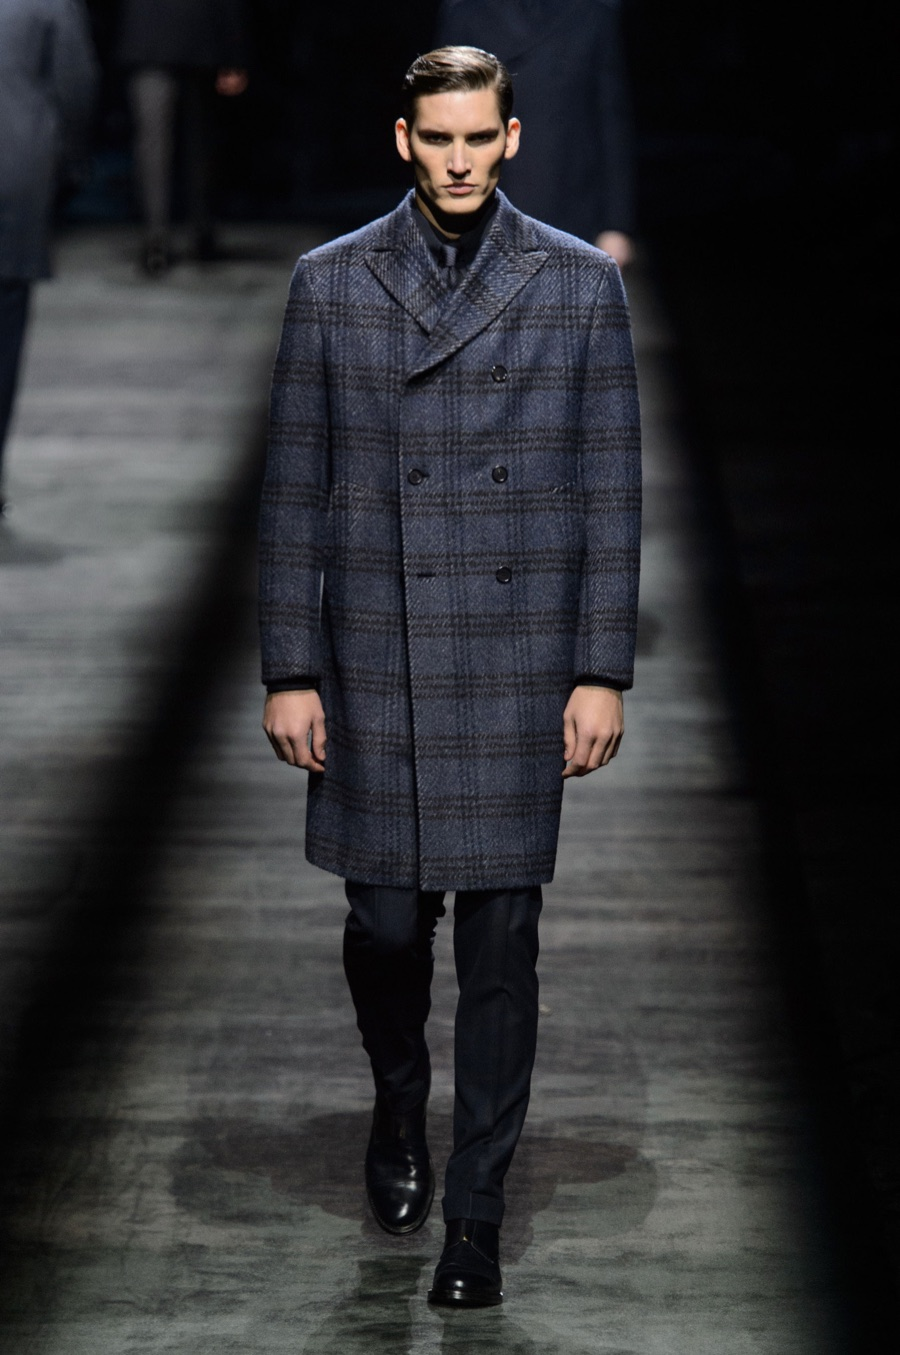 Brioni Updates Tailored Classics for Fall Collection